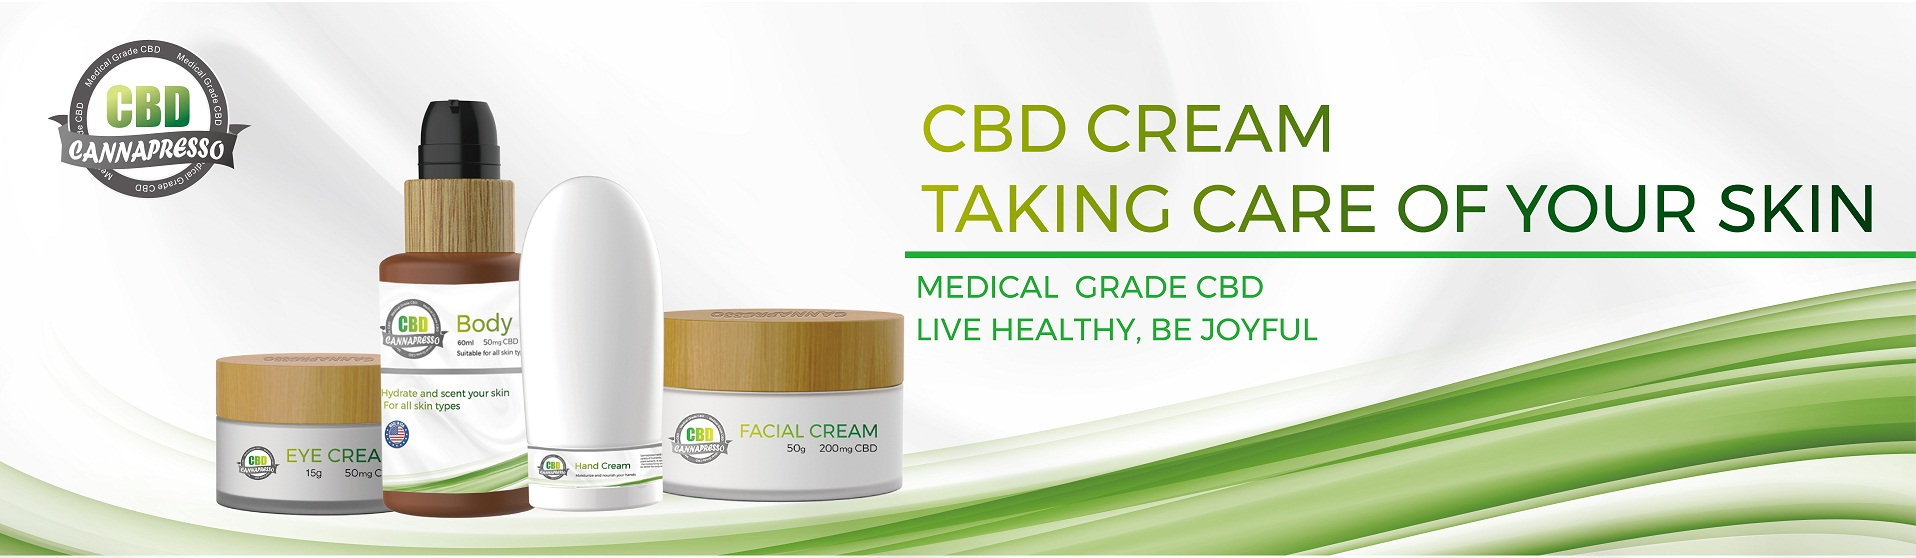 CANNAPRESSO CBD cream cbd lotion